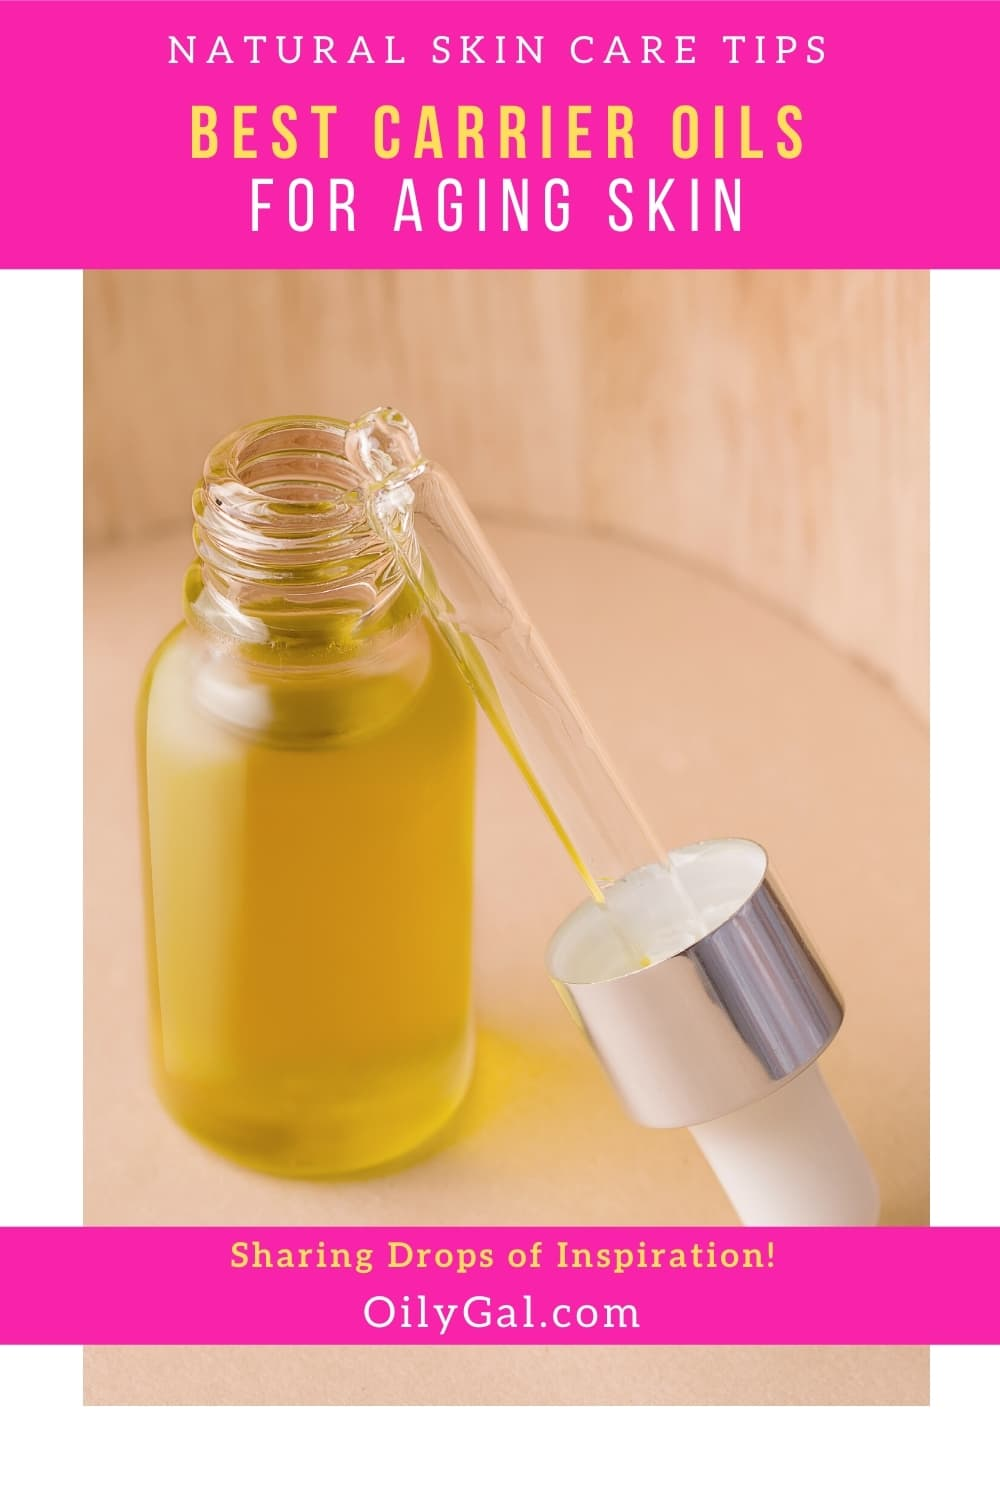 anti-aging carrier oils